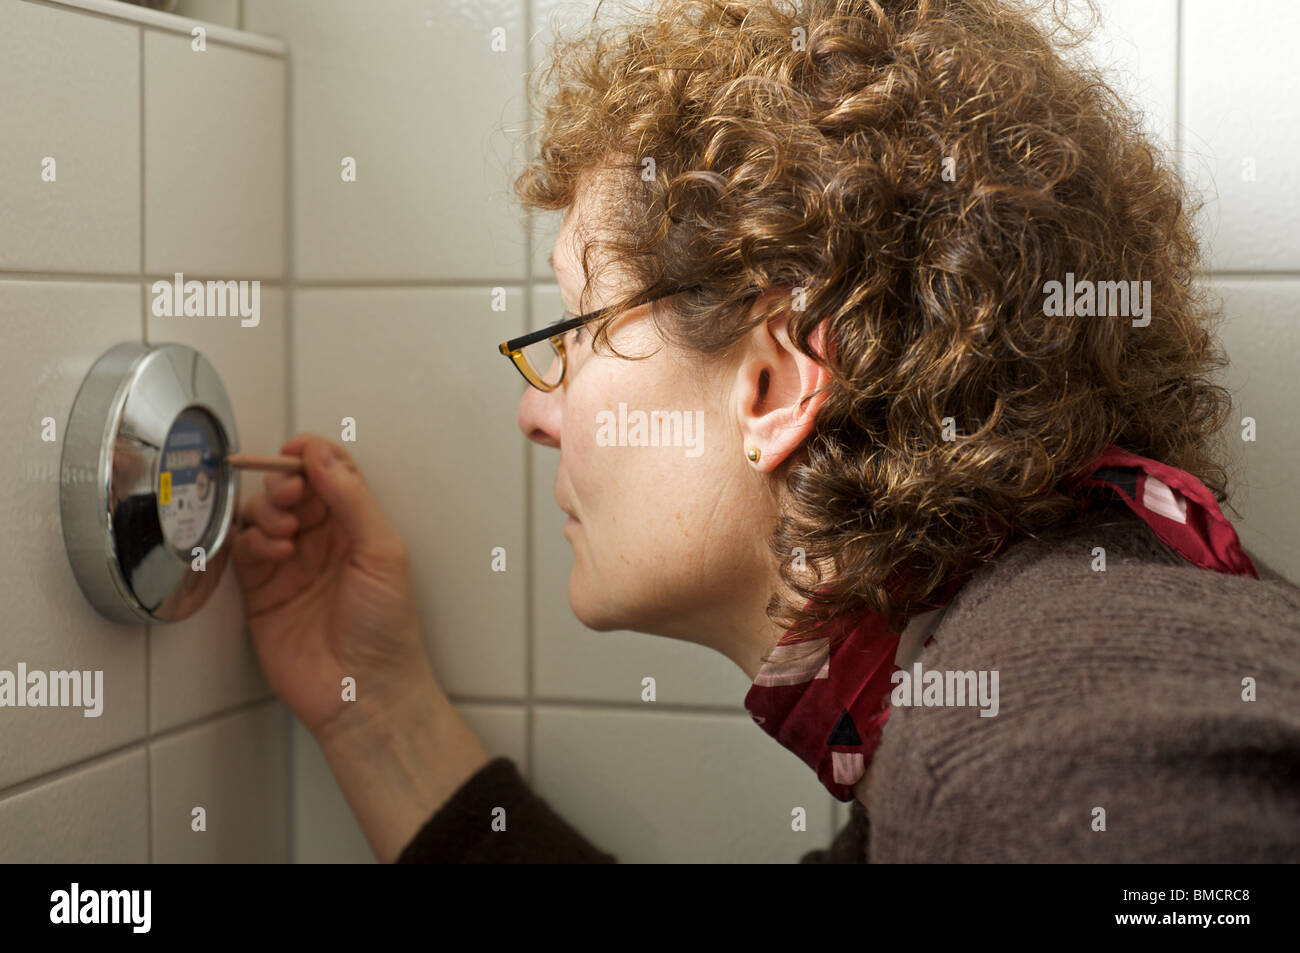 Homeowner taking a reading from a water meter - Stock Image